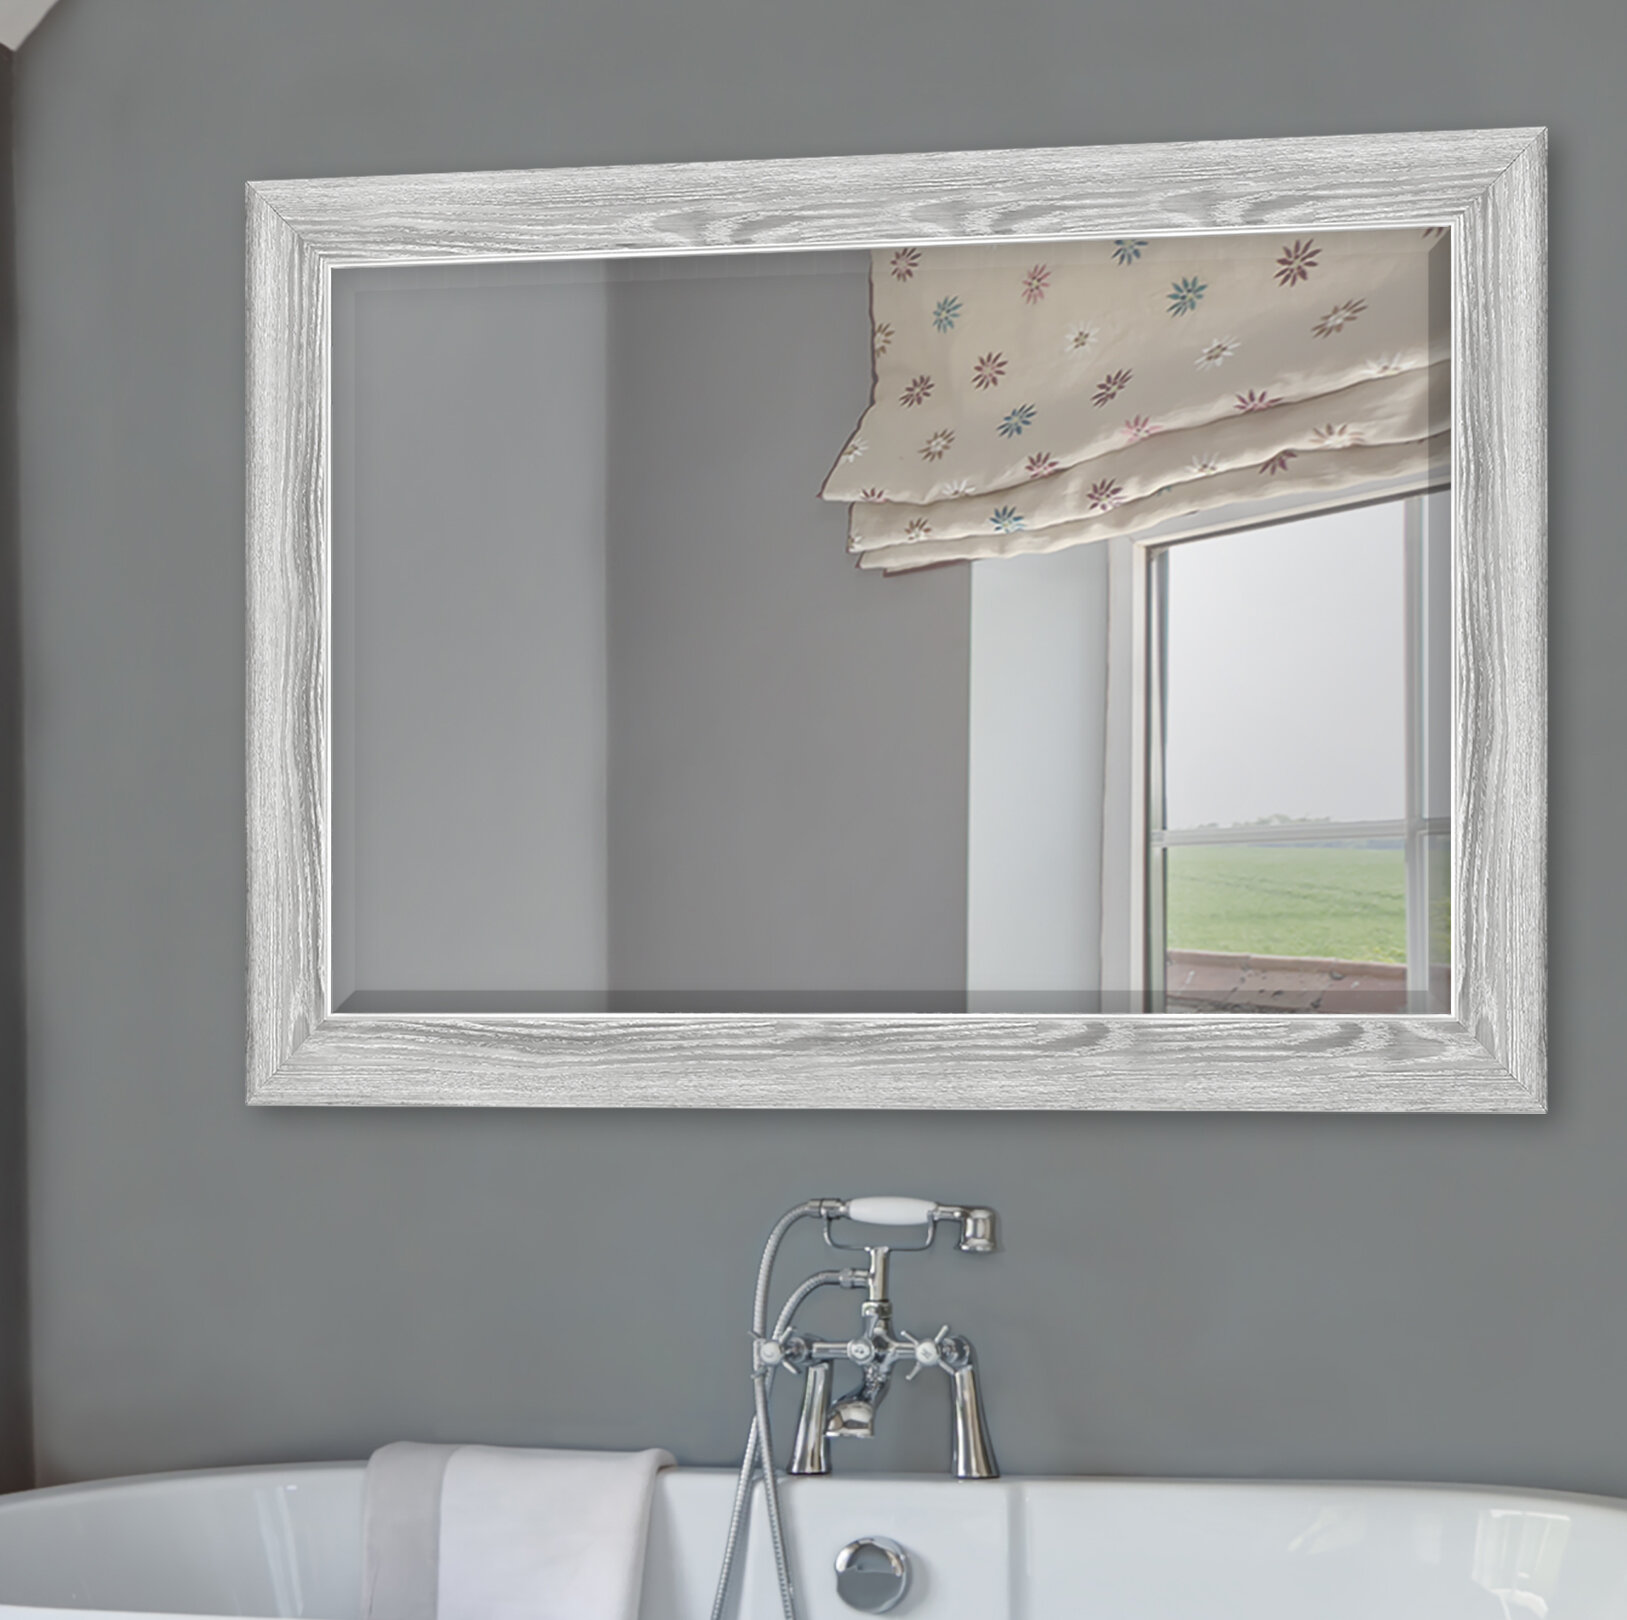 Yeung Curvature Bathroom Vanity Mirror